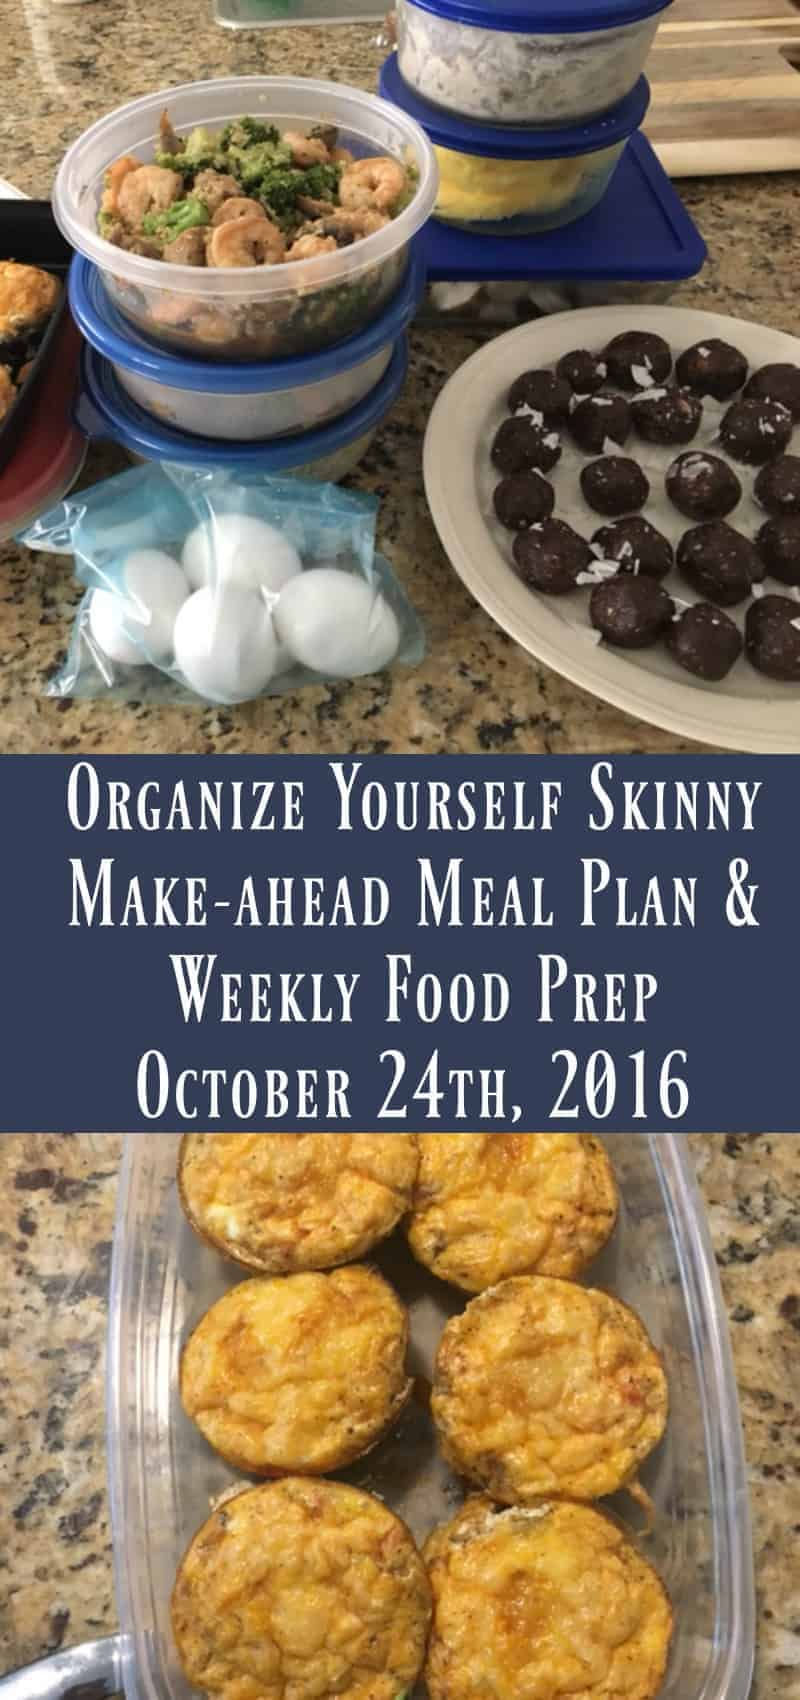 Make-ahead Meal Plan and Weekly Food Prep {October 16th, 2016}